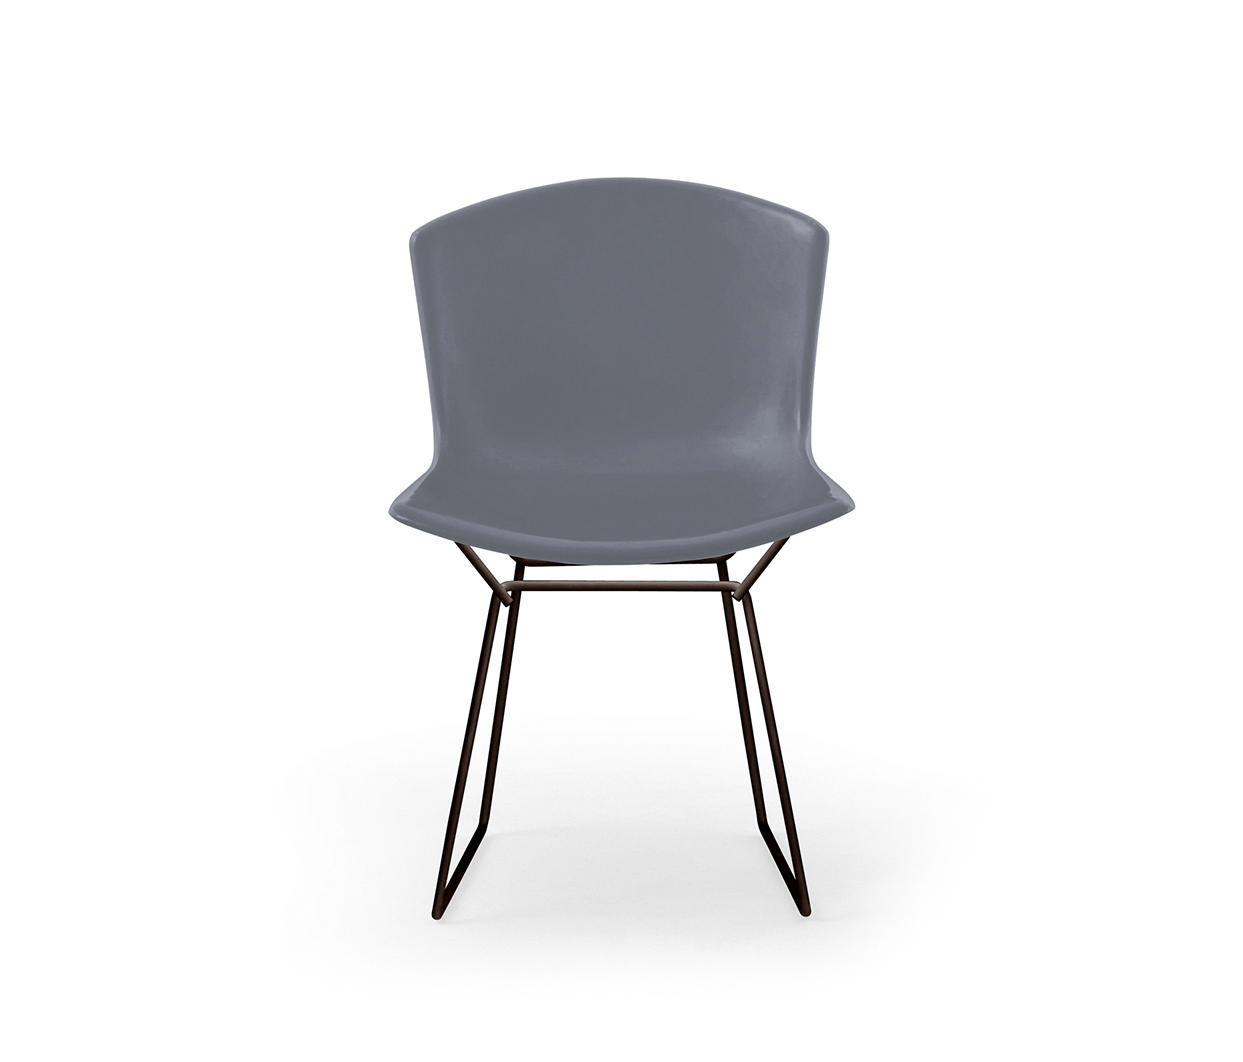 bertoia side chair plastic folding lounge outdoor garden chairs from knoll